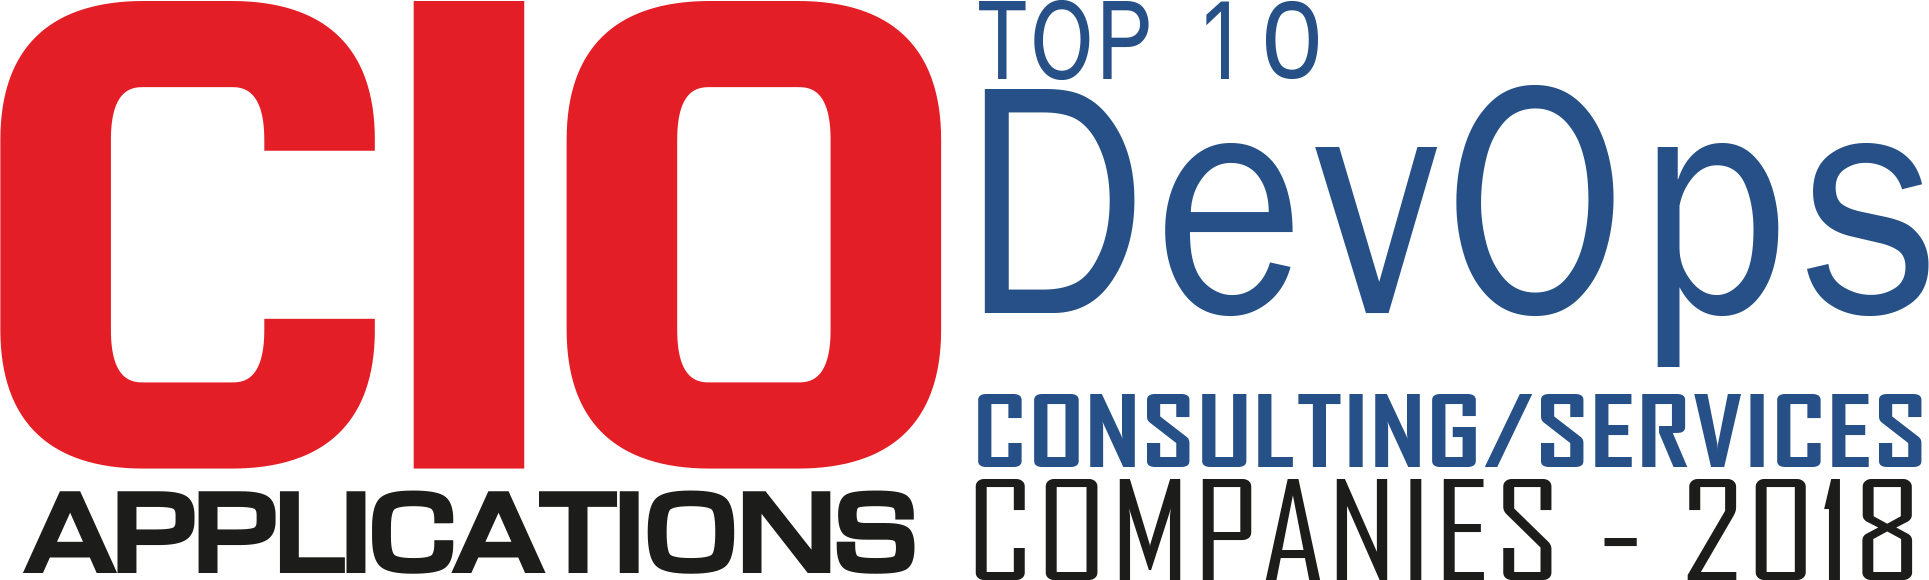 Top 10 Companies Providing DevOps Services/Consulting  - 2018